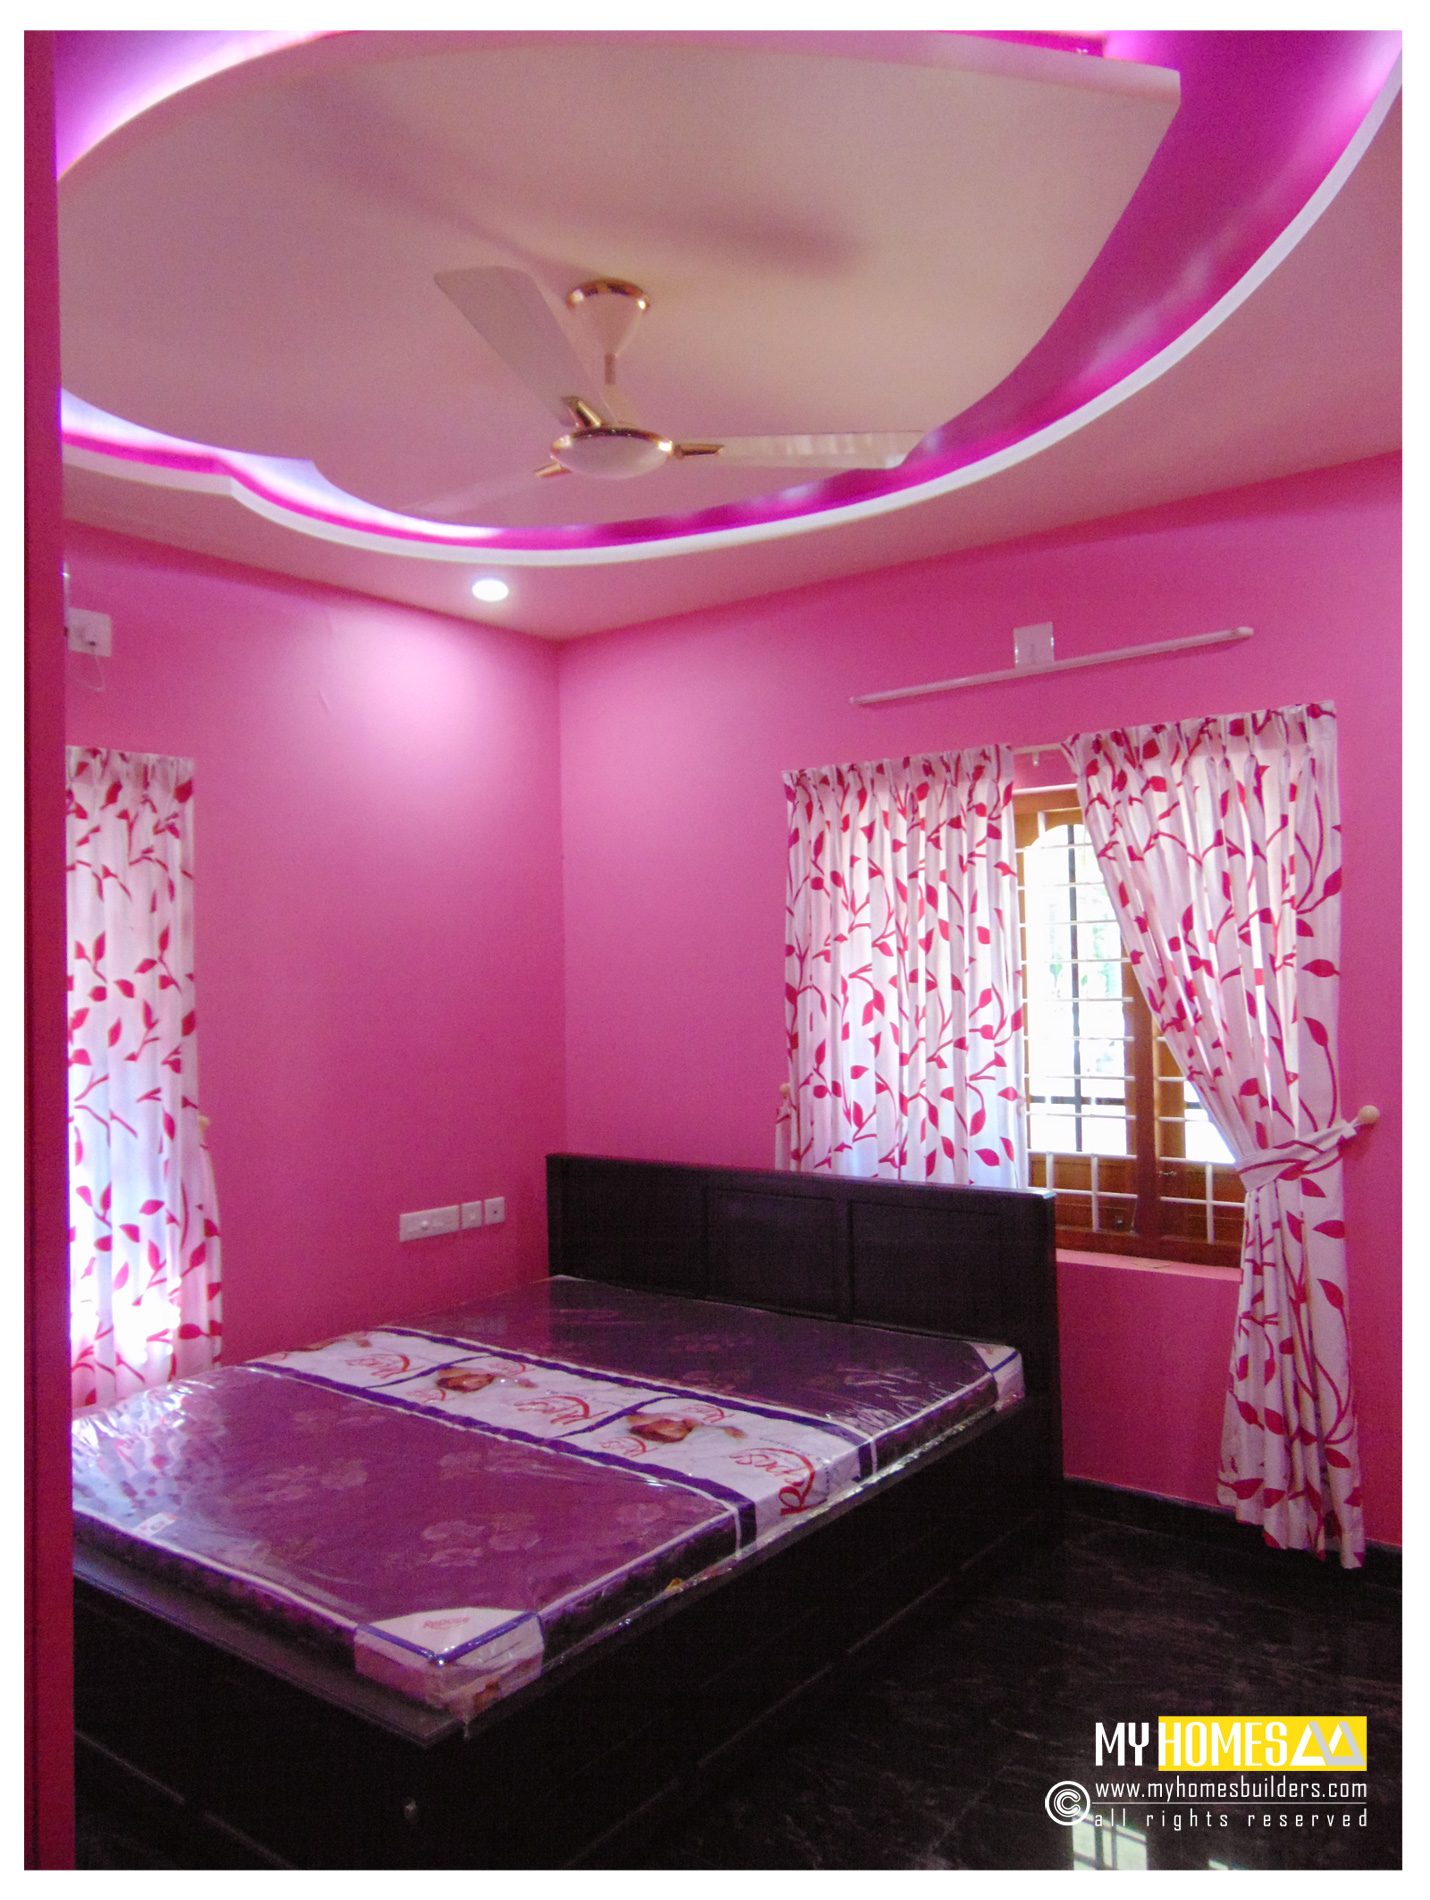 Simple style kerala bedroom designs ideas for home interior for New house bedroom ideas